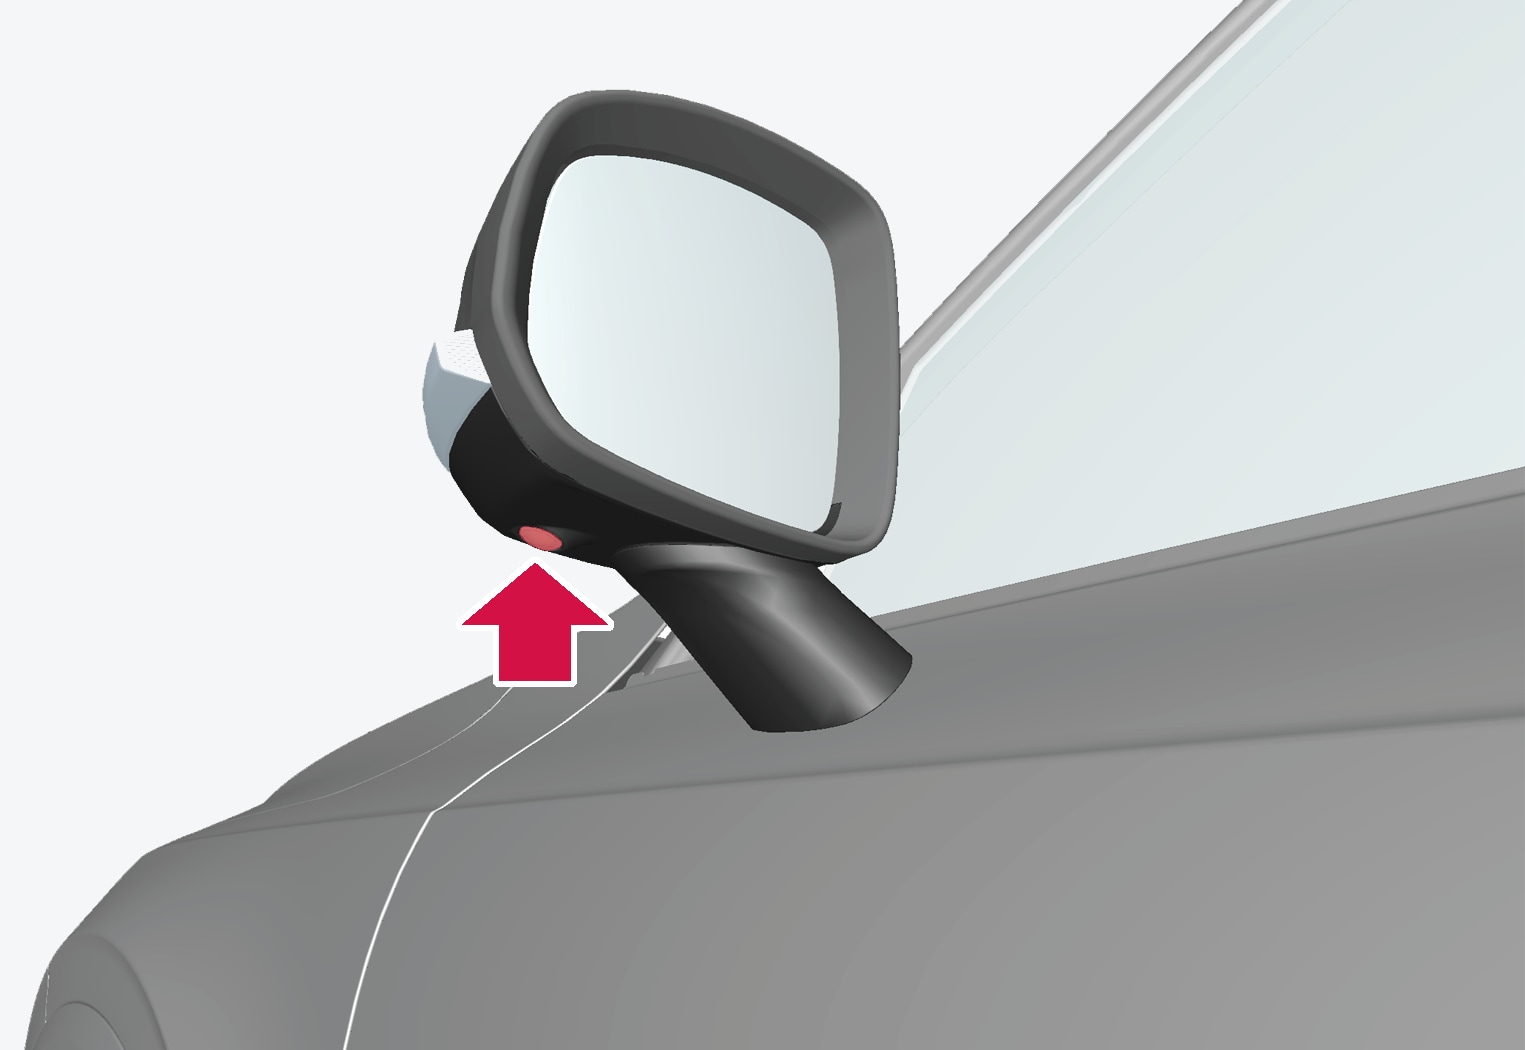 P5-1507-Park Assist Camera, side camera on door mirror